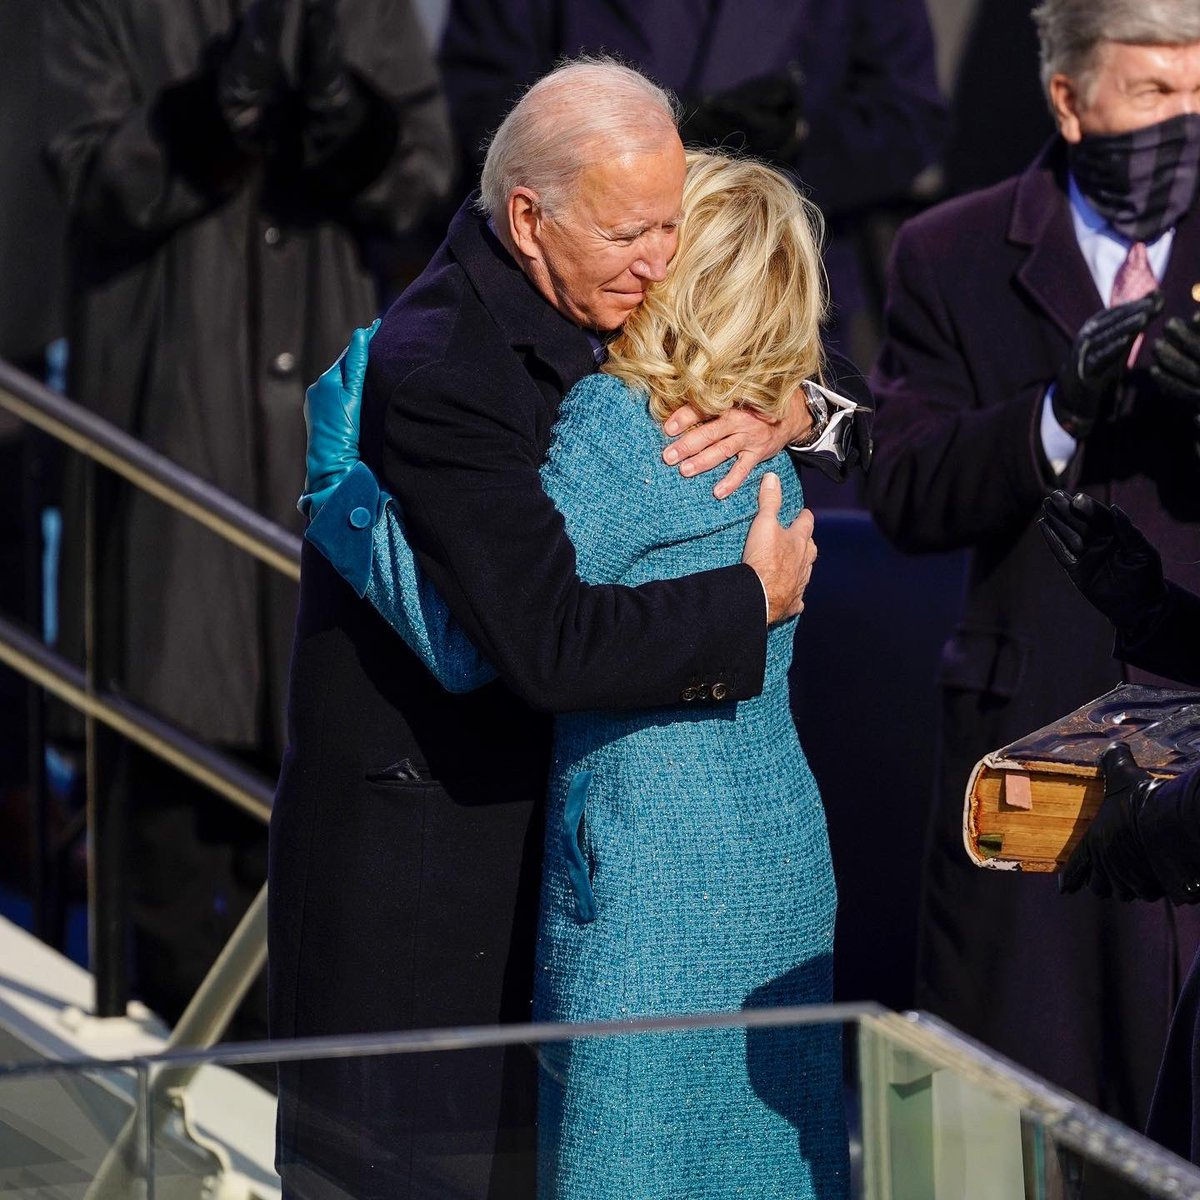 Decency and compassion restored. Hallelujah!! President @JoeBiden 🇺🇸🇺🇸🇺🇸🇺🇸